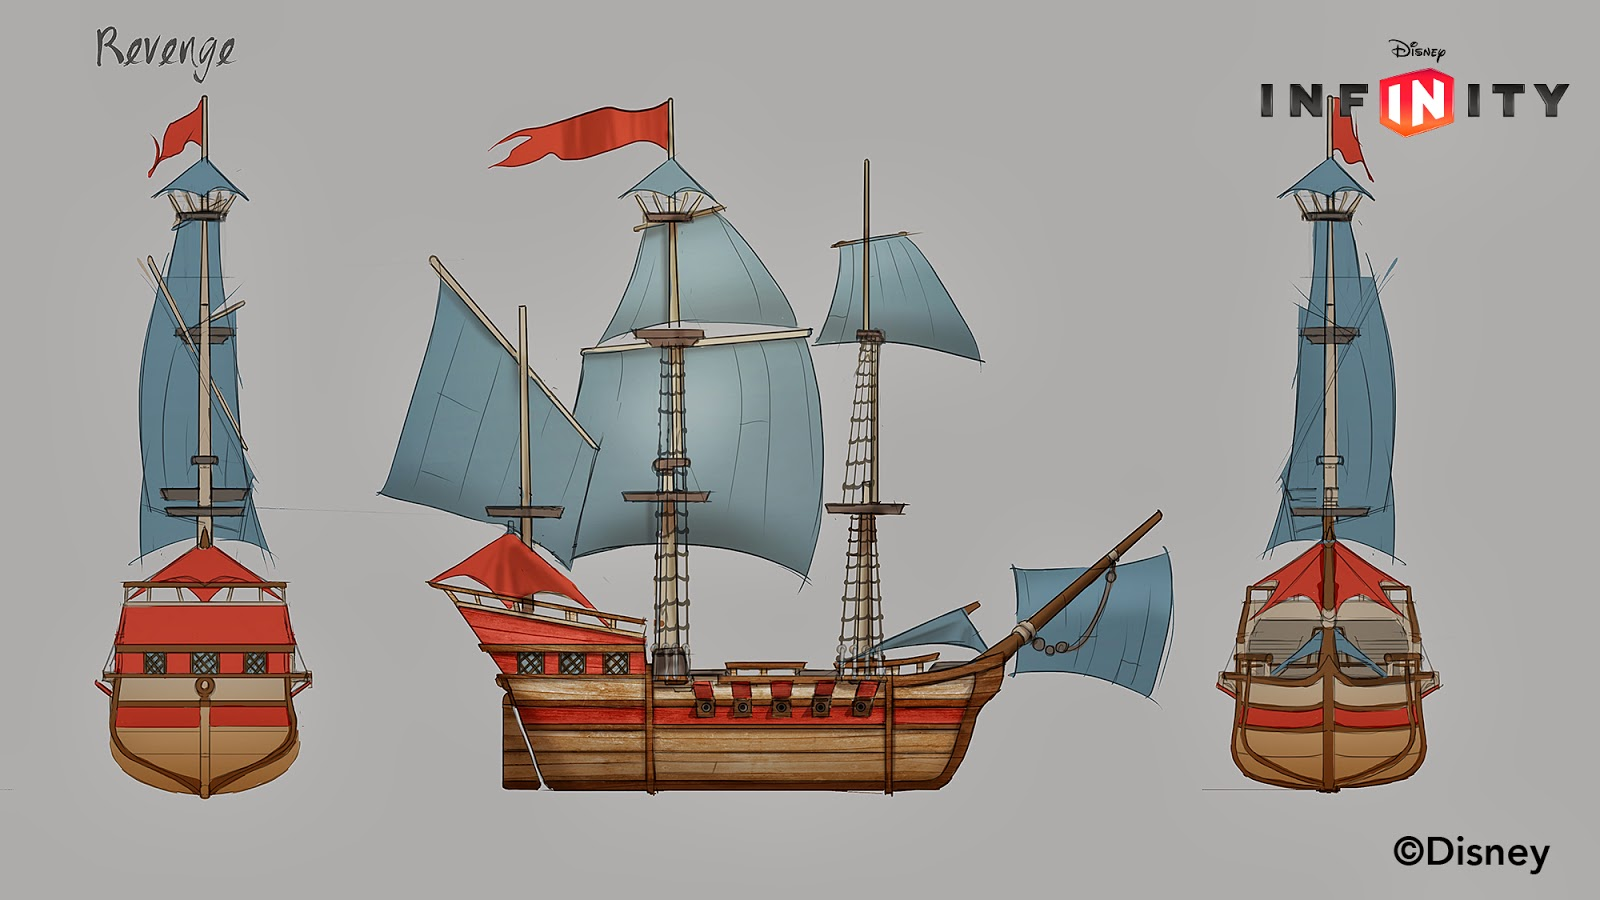 Diagram Of A Caravel Ship The Gift Magi Plot Three Very Wise Monkeys Disney Infinity Going To Need